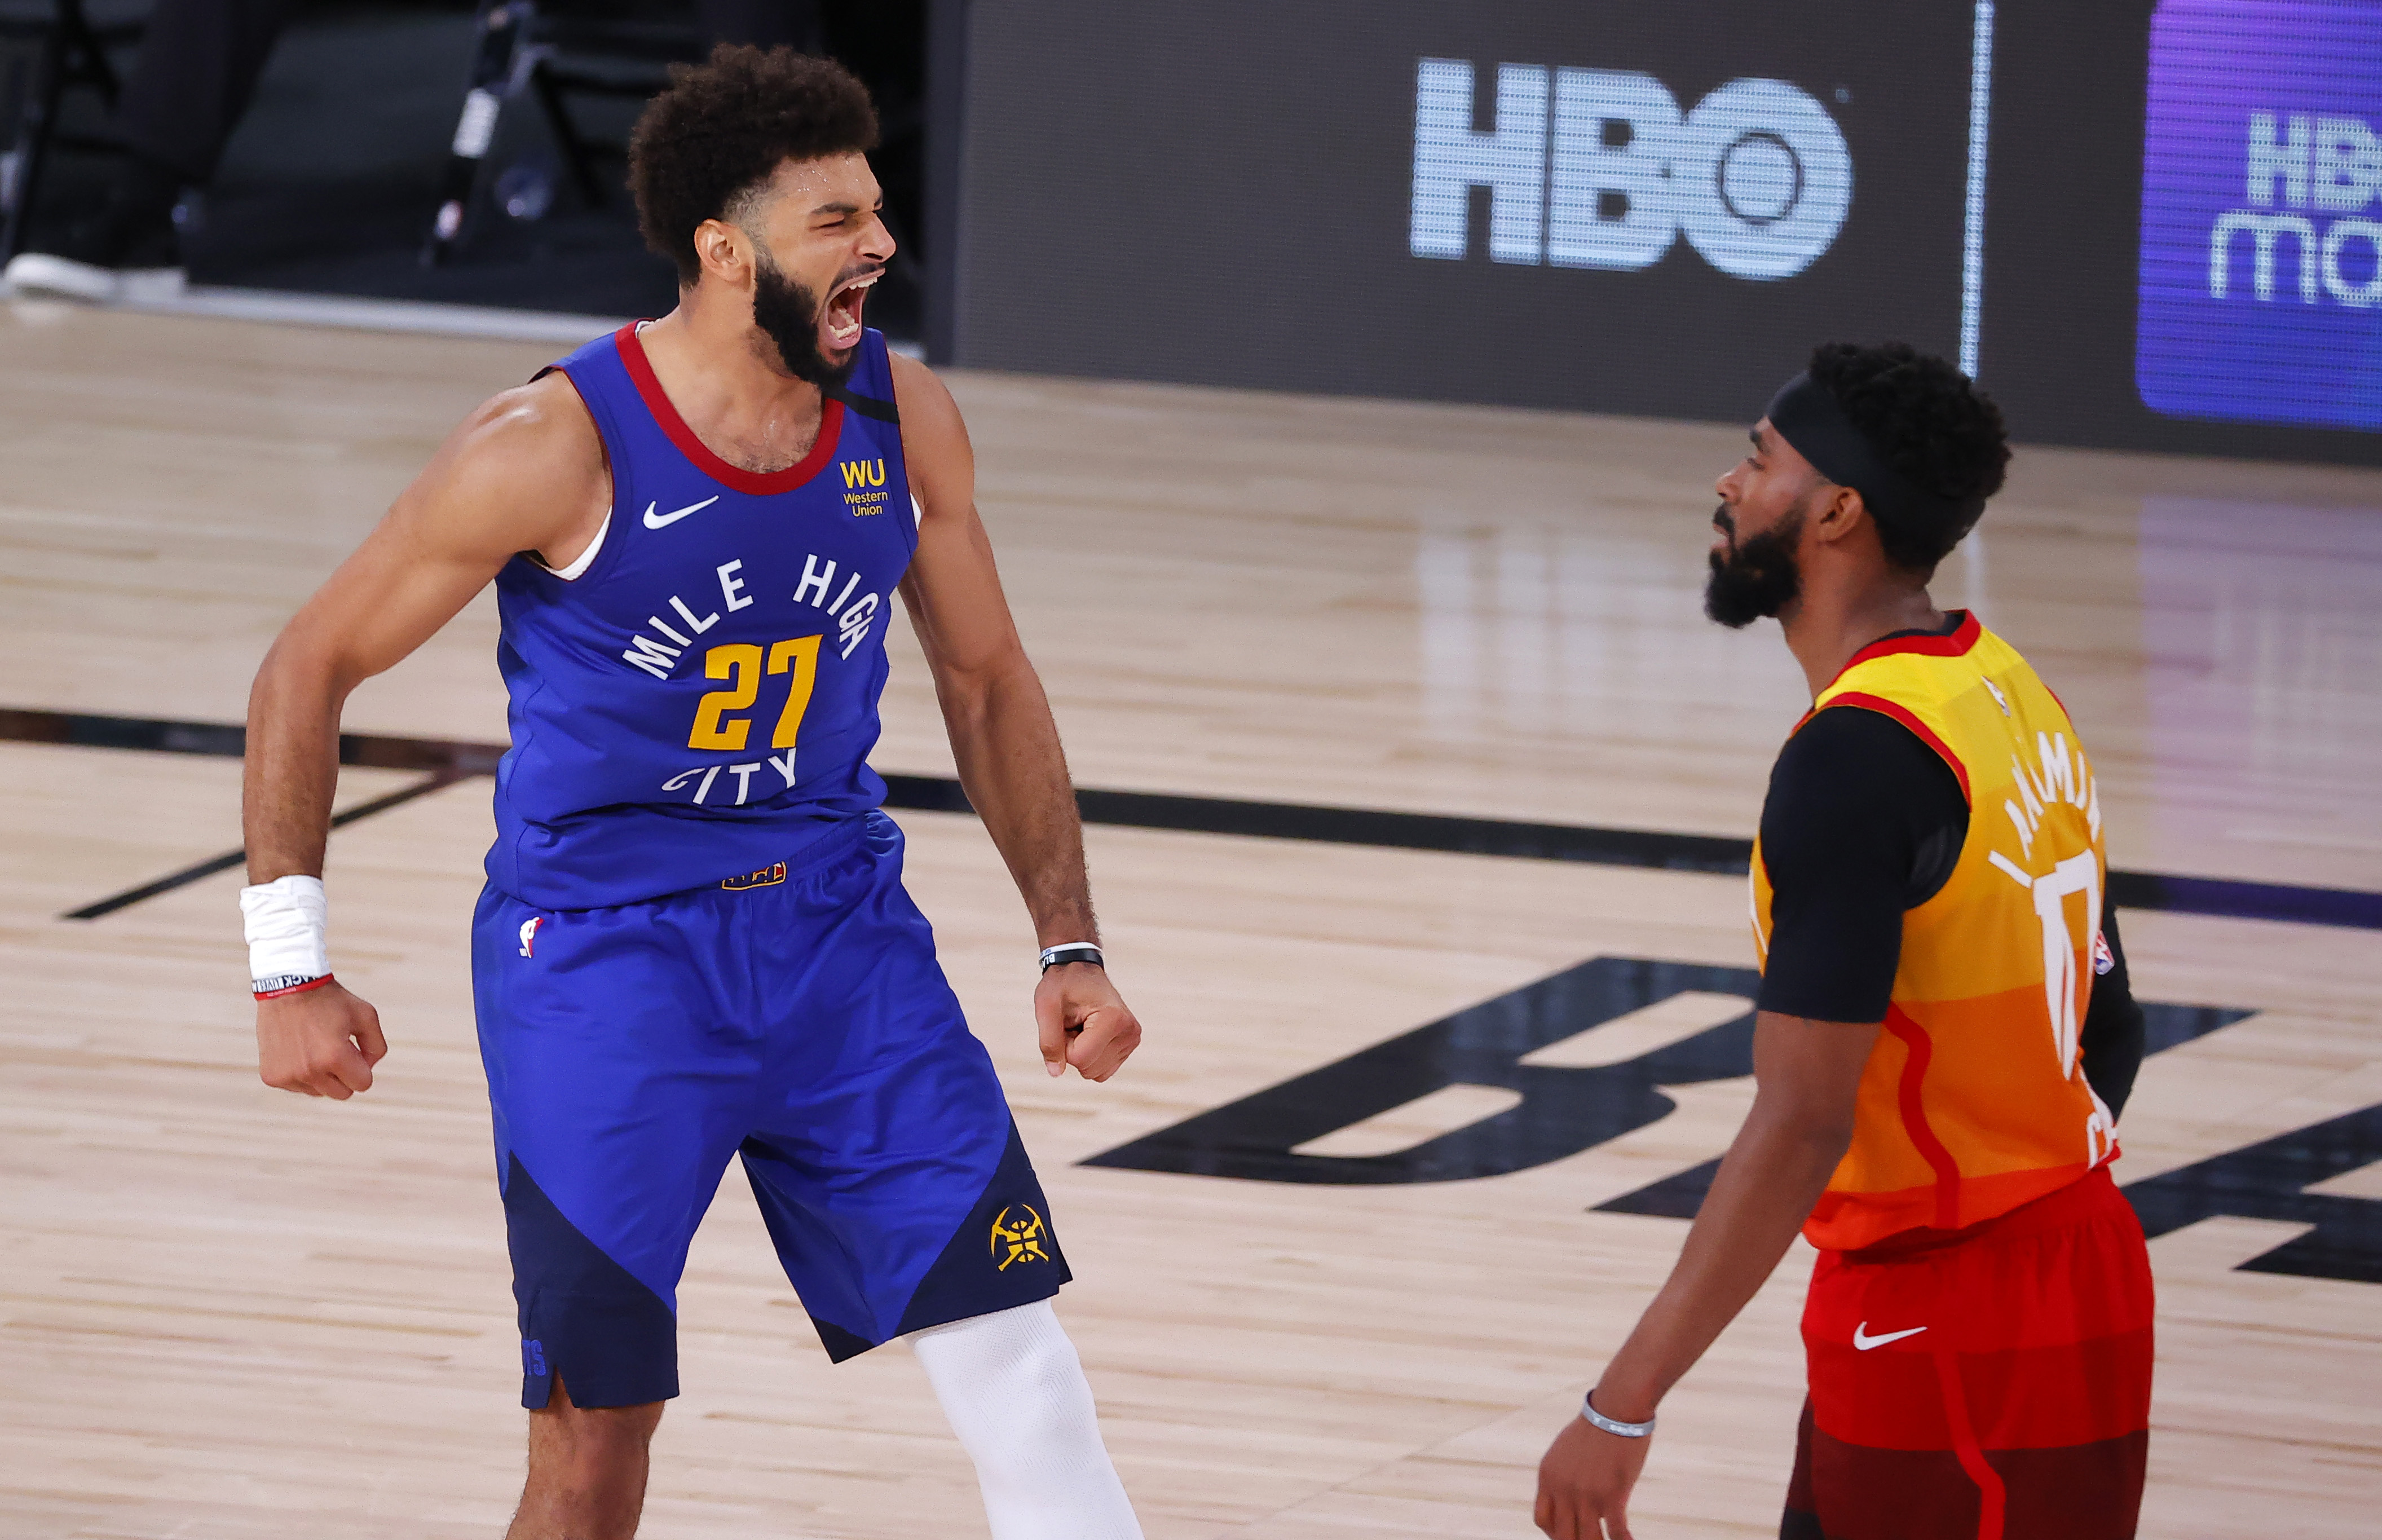 Denver Nuggets Vs Utah Jazz Game 7 Free Live Stream 9 1 20 How To Watch Nba Playoffs Time Channel Pennlive Com